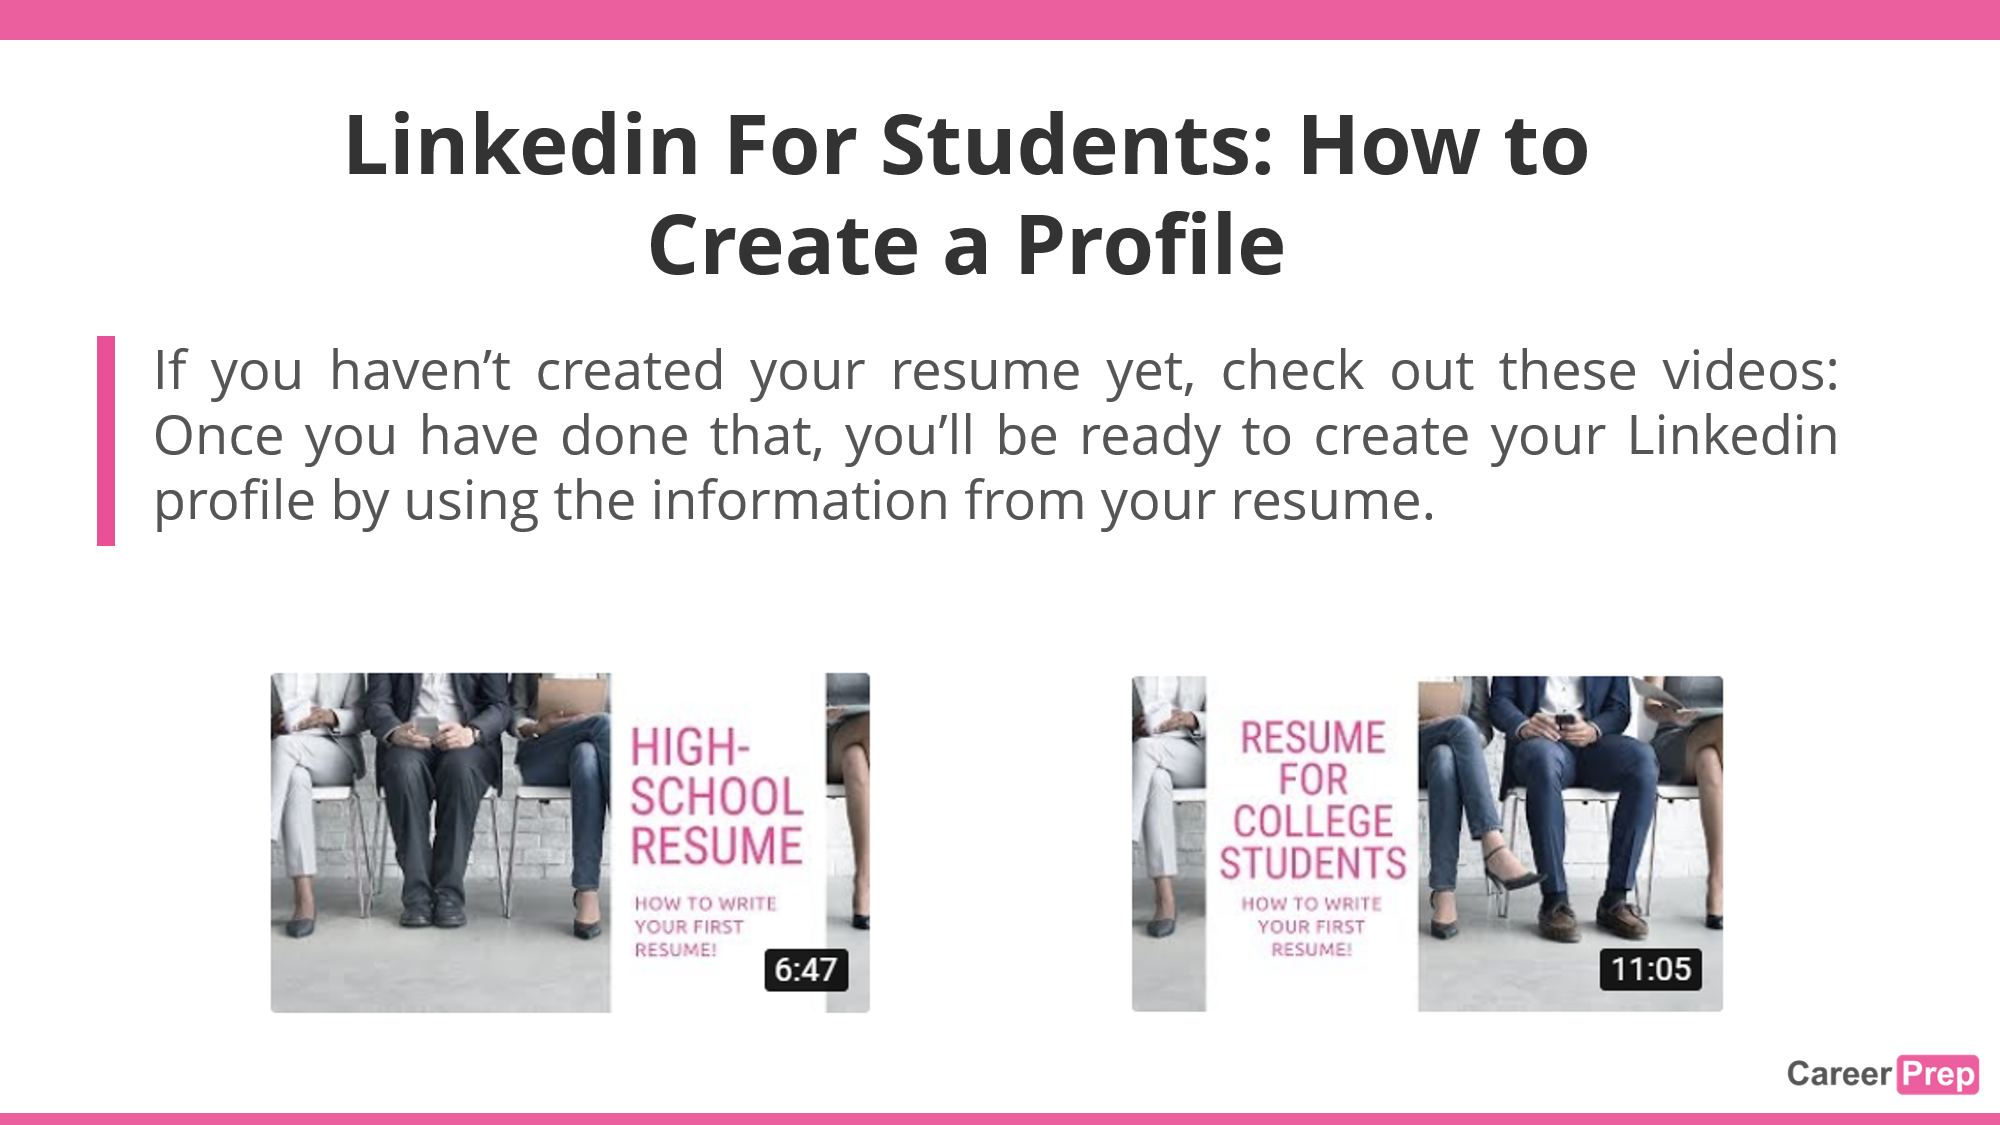 Linkedin for students - resume writing videos